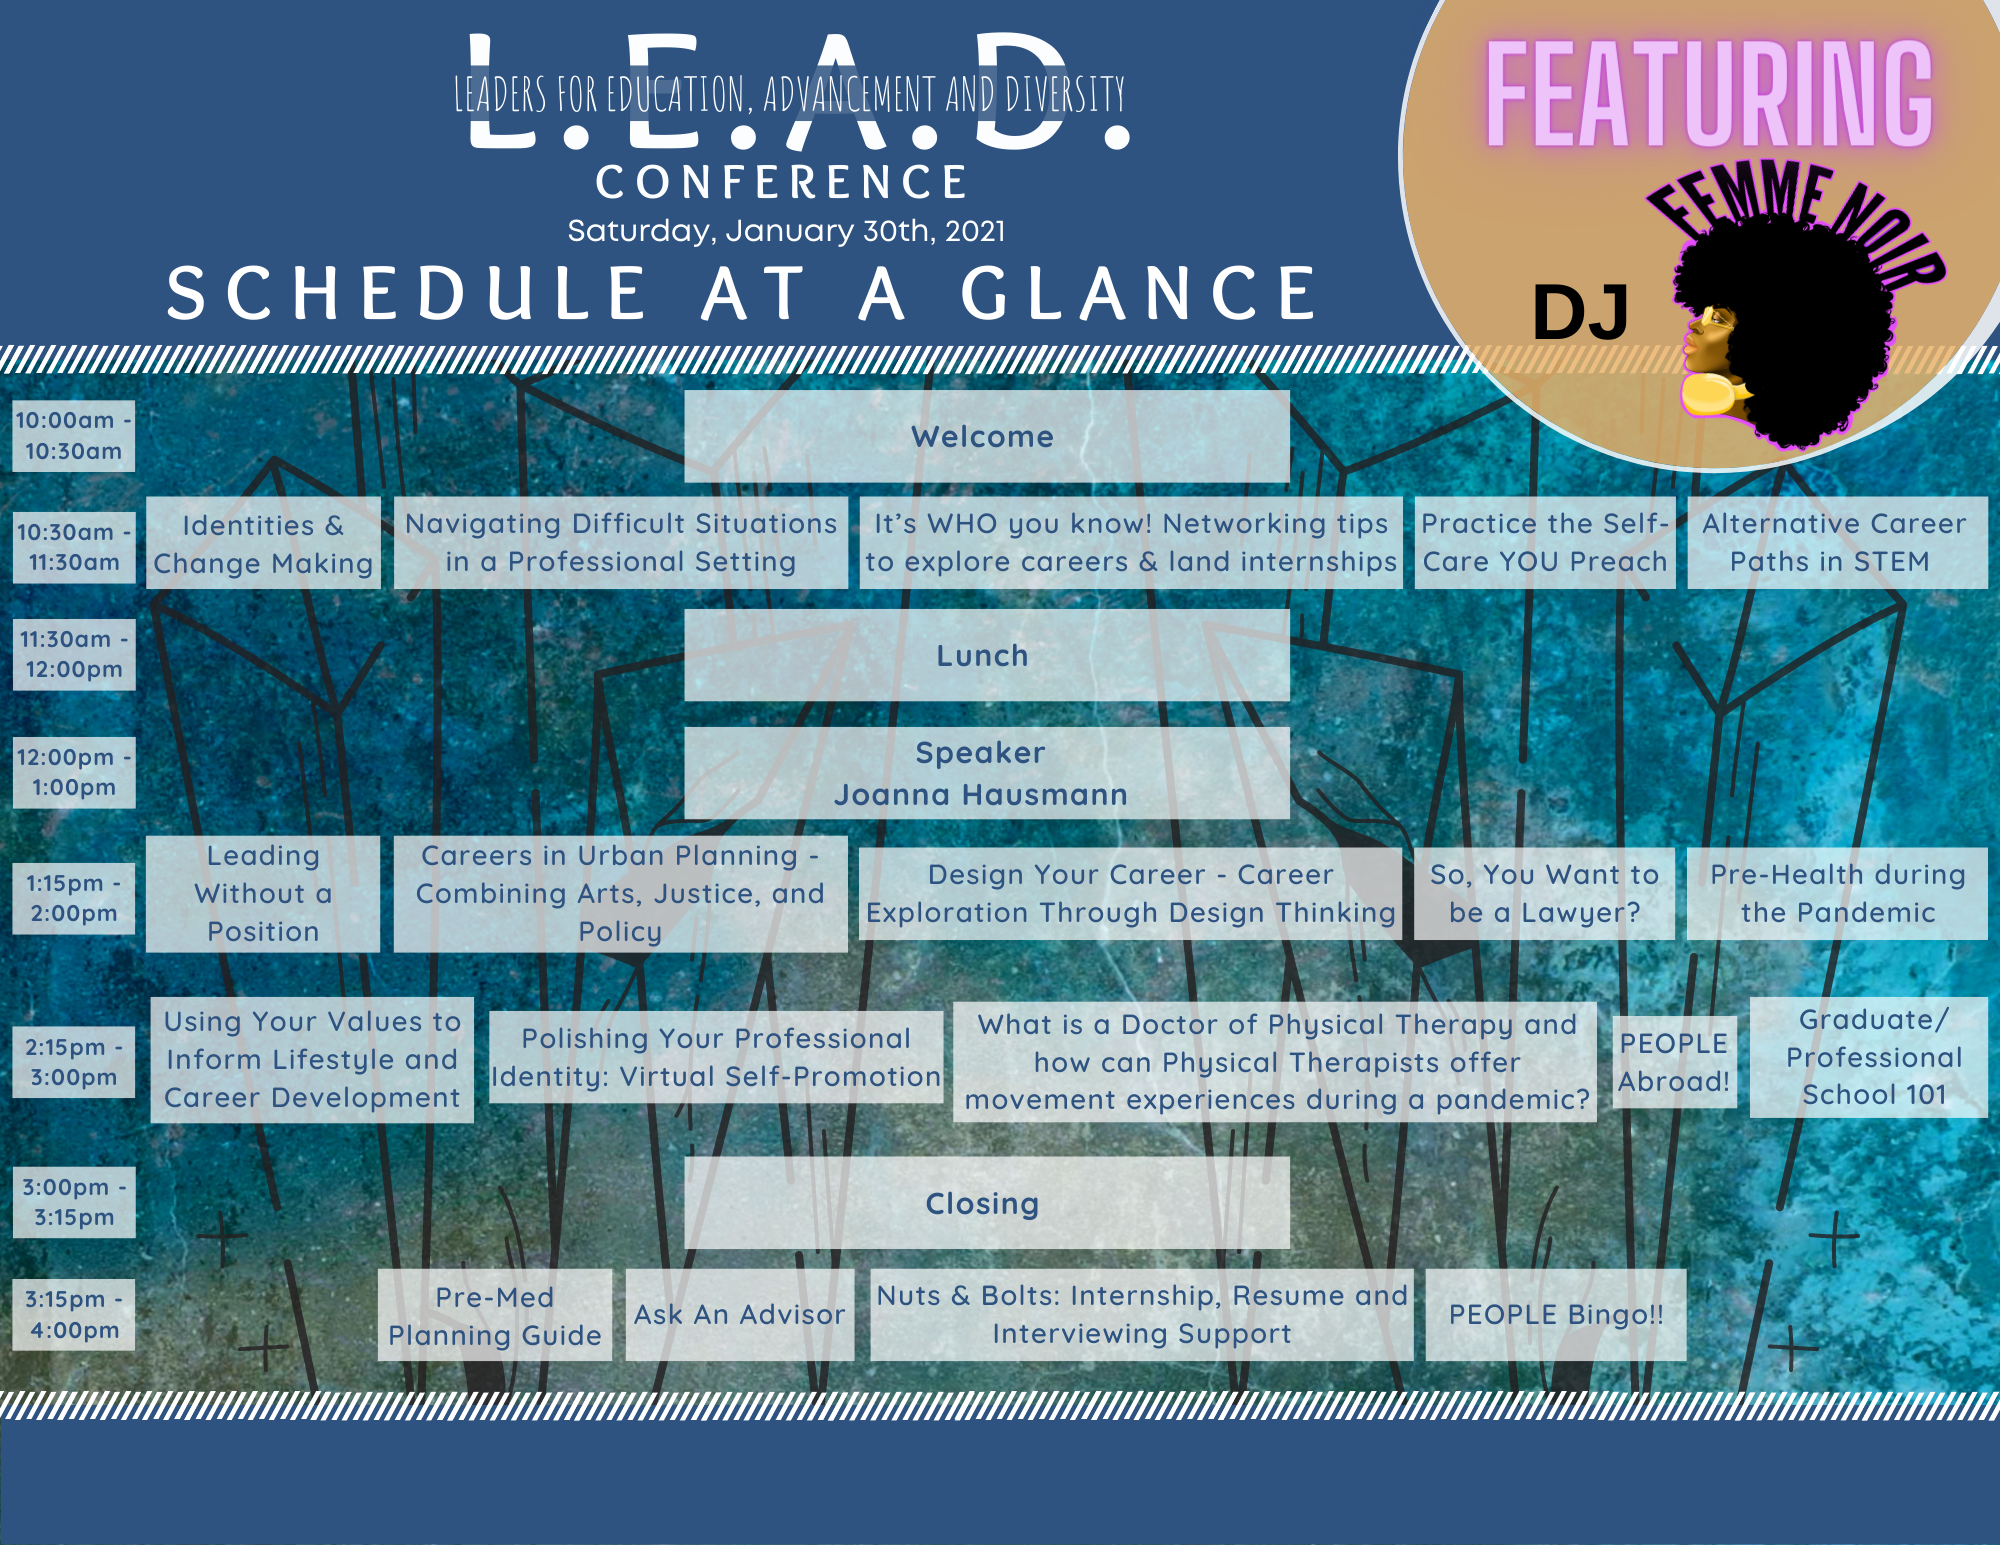 LEAD Conference Schedule at a Glance